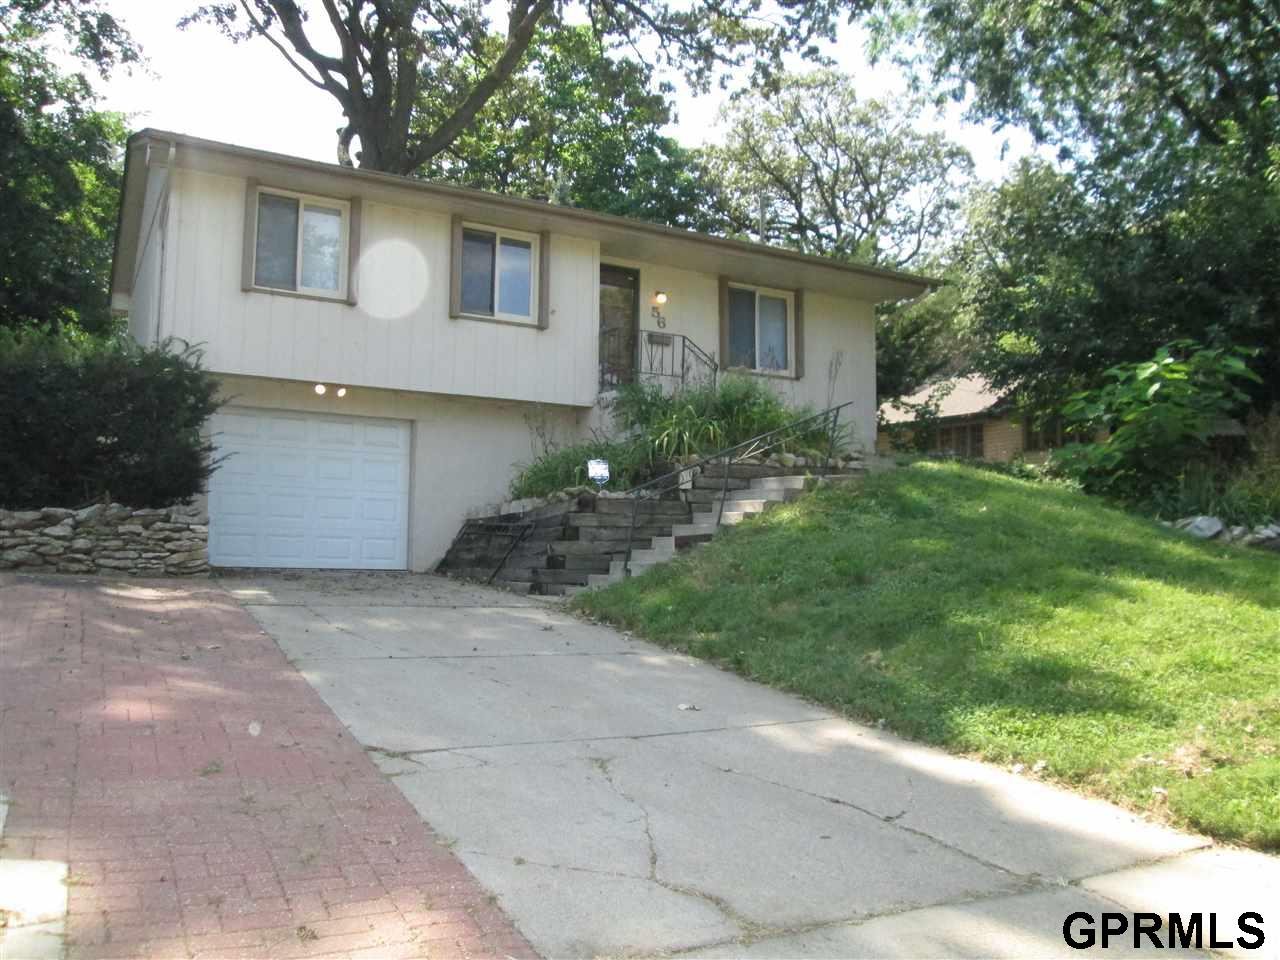 Rental Homes for Rent, ListingId:35232180, location: 56 Country Club Rd Ralston 68127